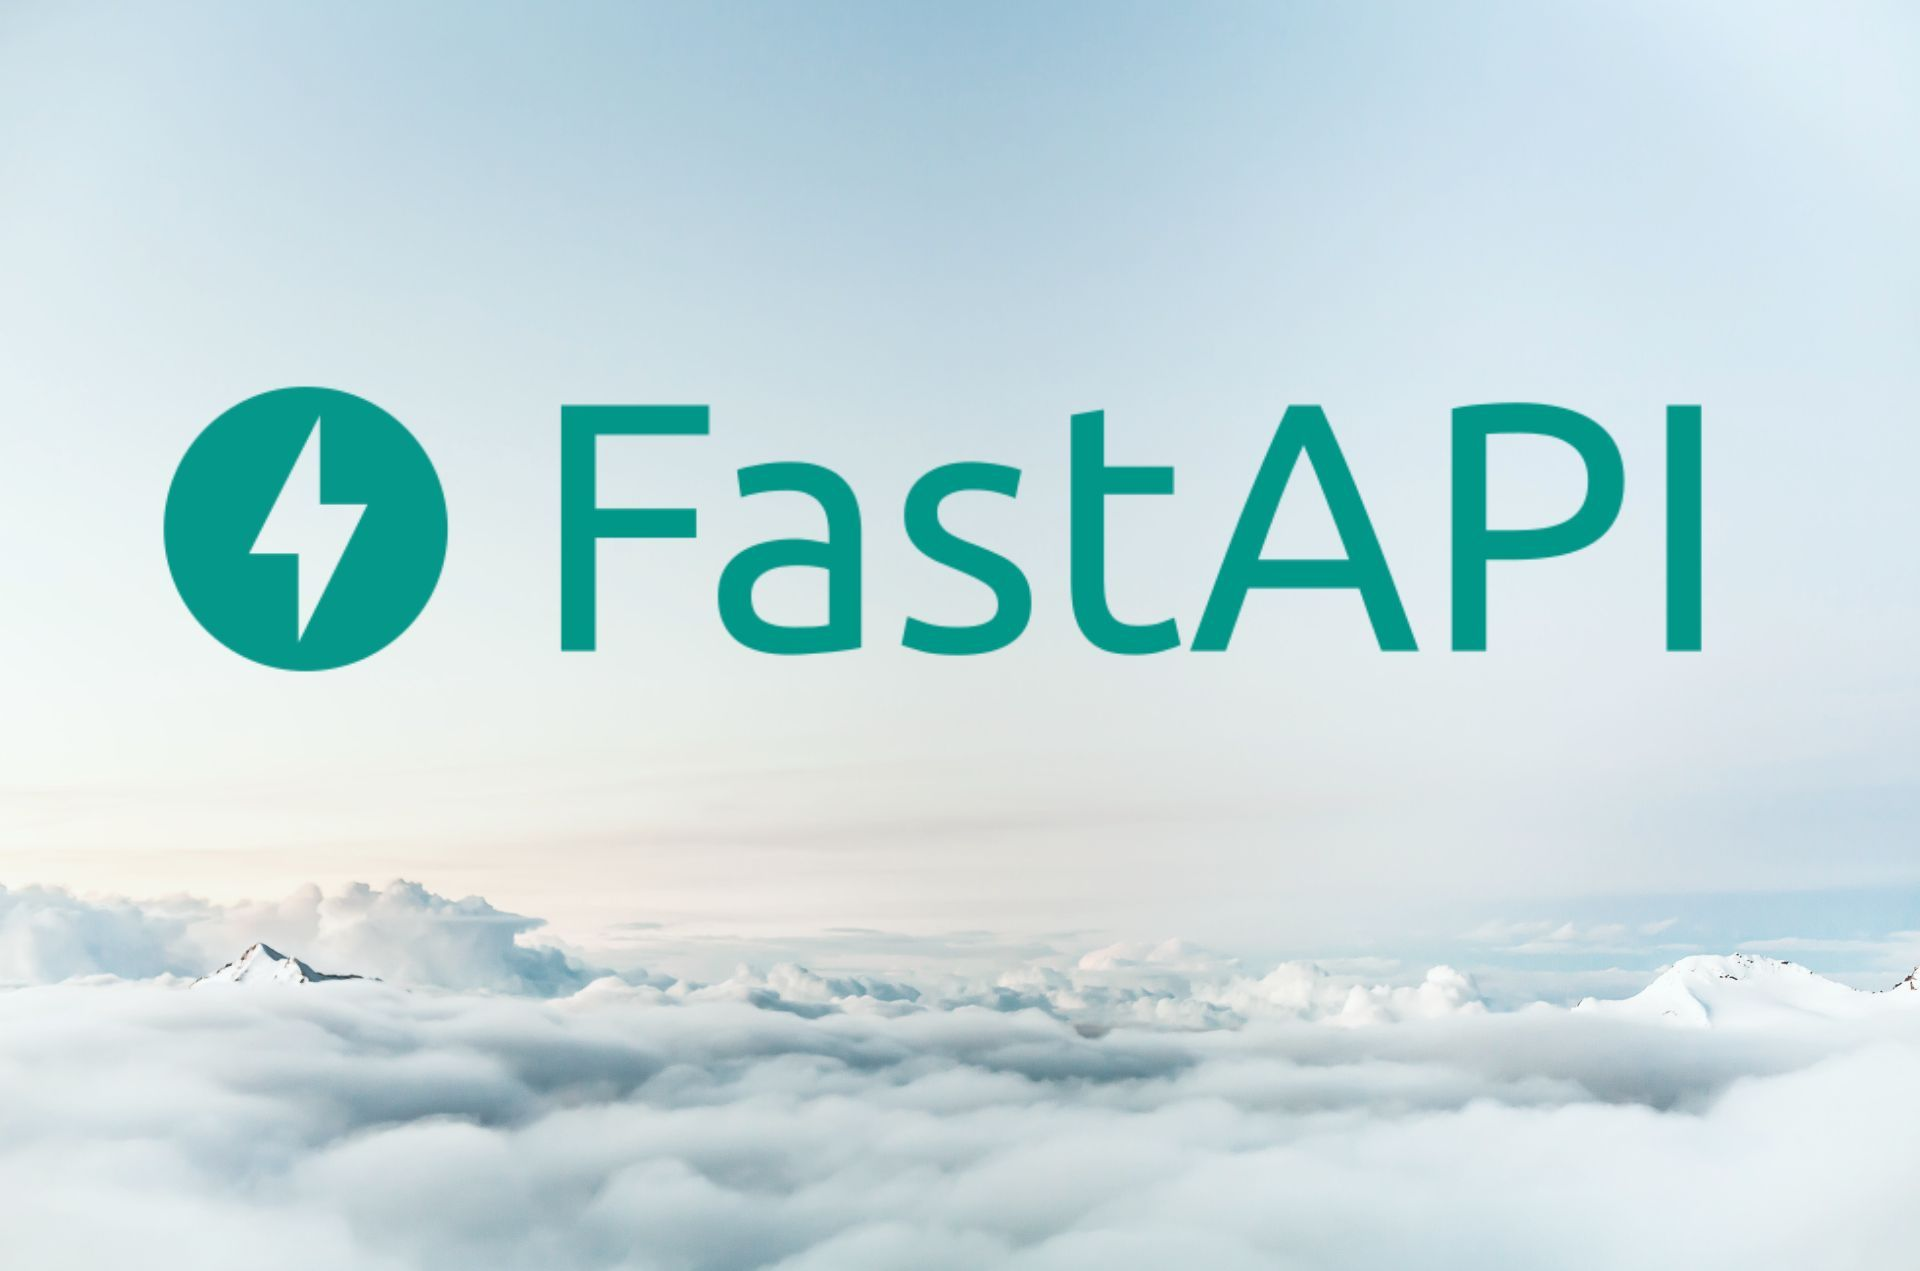 /how-to-build-and-deploy-an-nlp-model-with-fastapi-part-2-0a1x37ot feature image